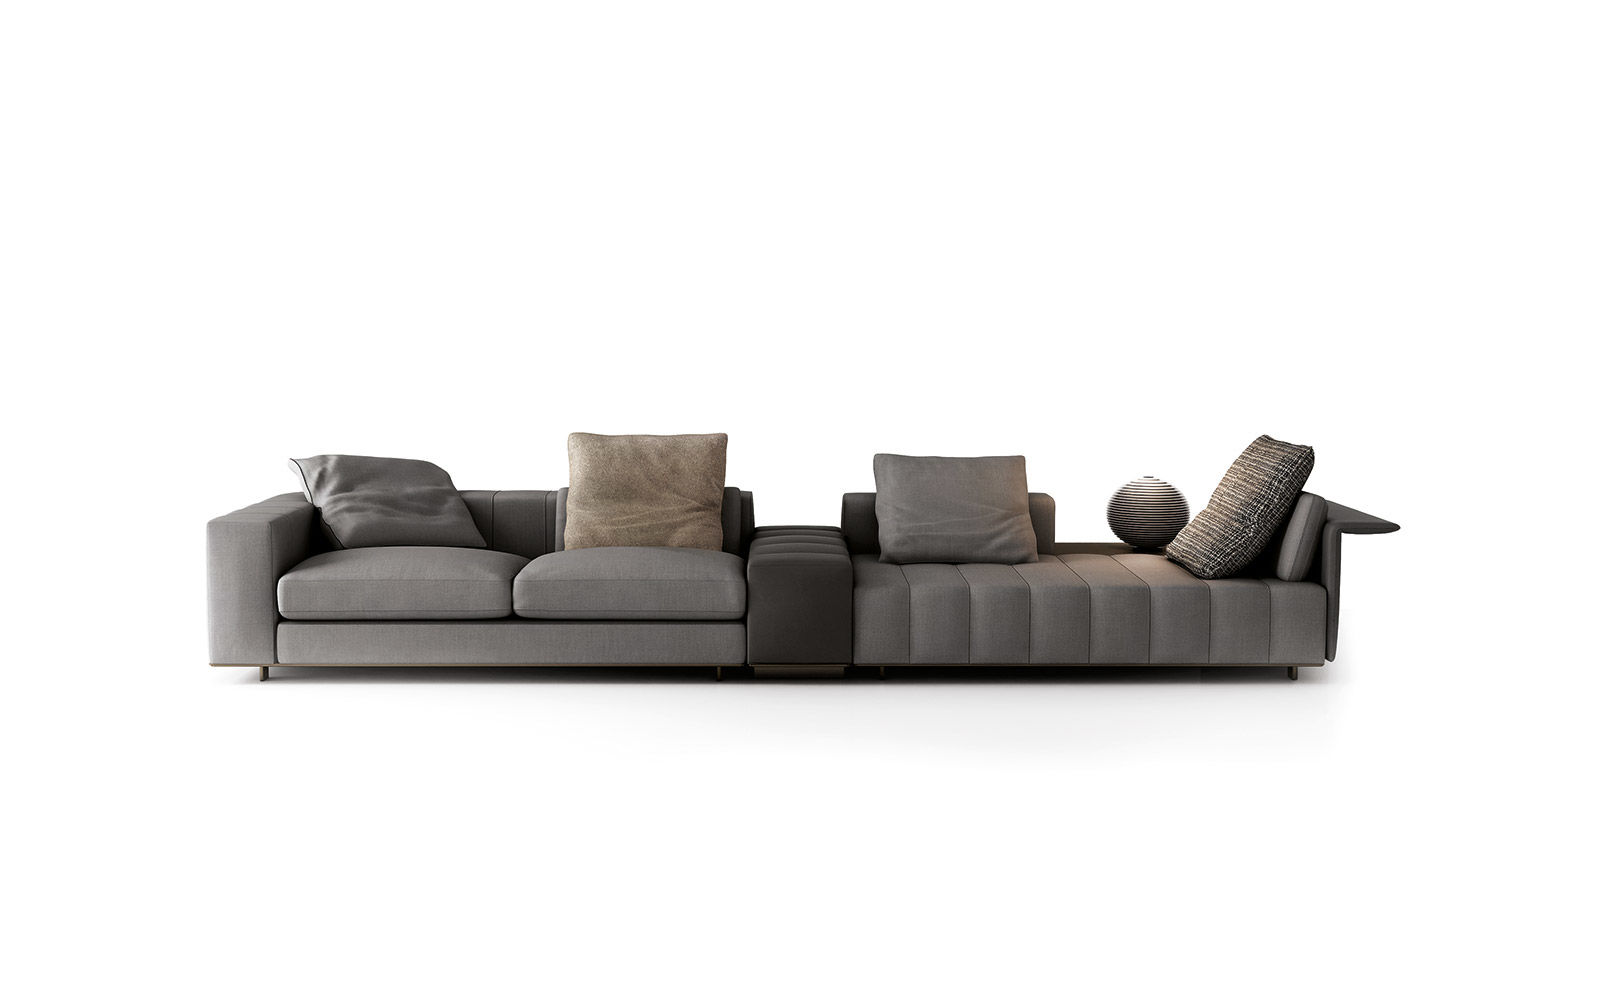 FREEMAN SEATING SYSTEM | SOFAS   EN